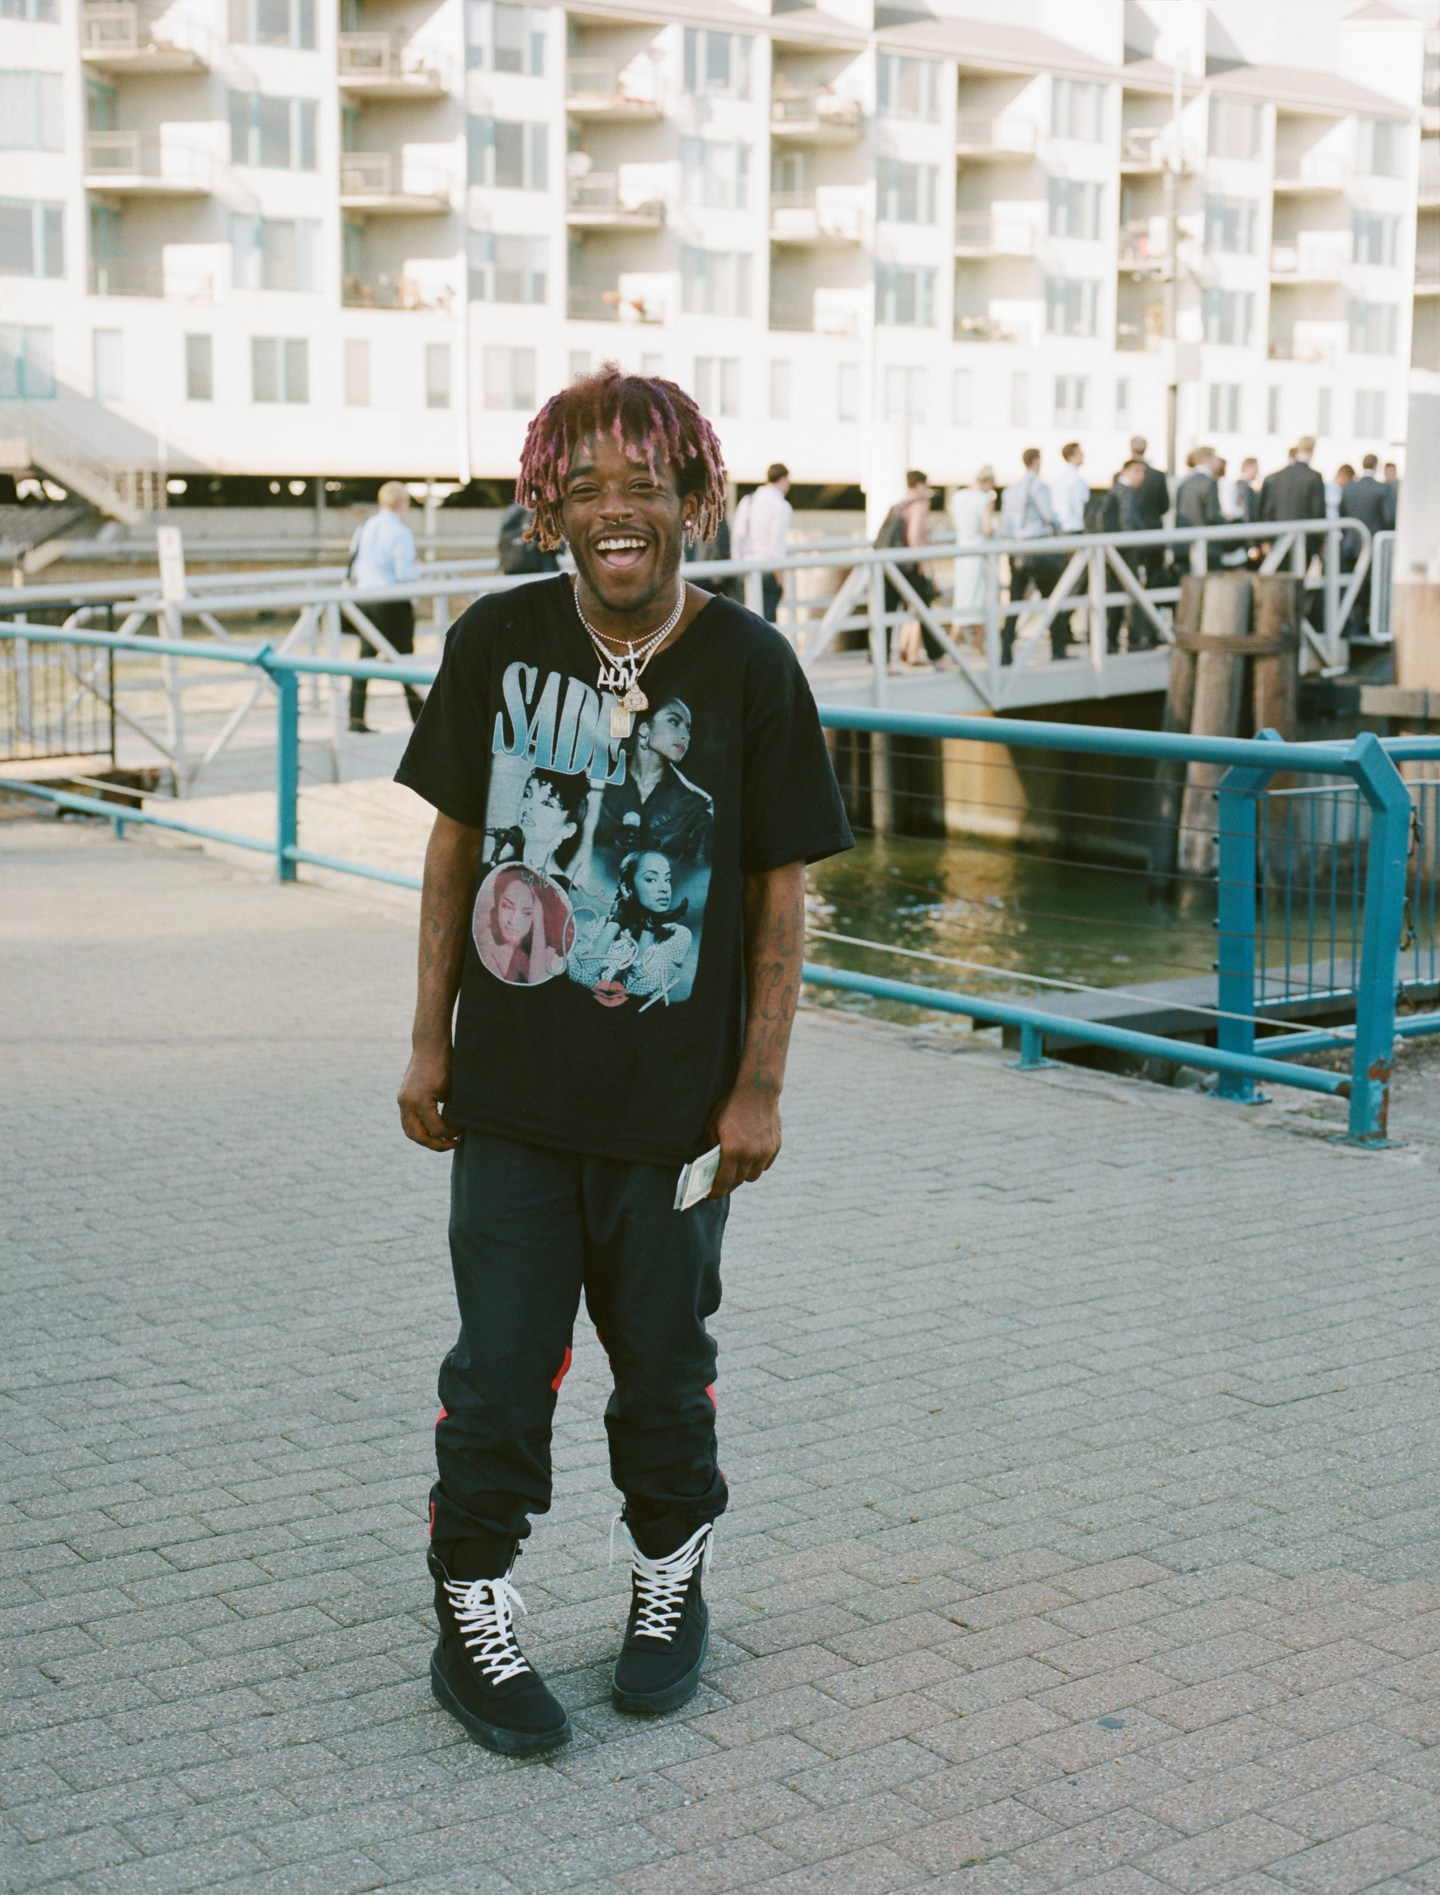 Meet Lil Uzi Vert, The First Rockstar Of Post-Obama Rap